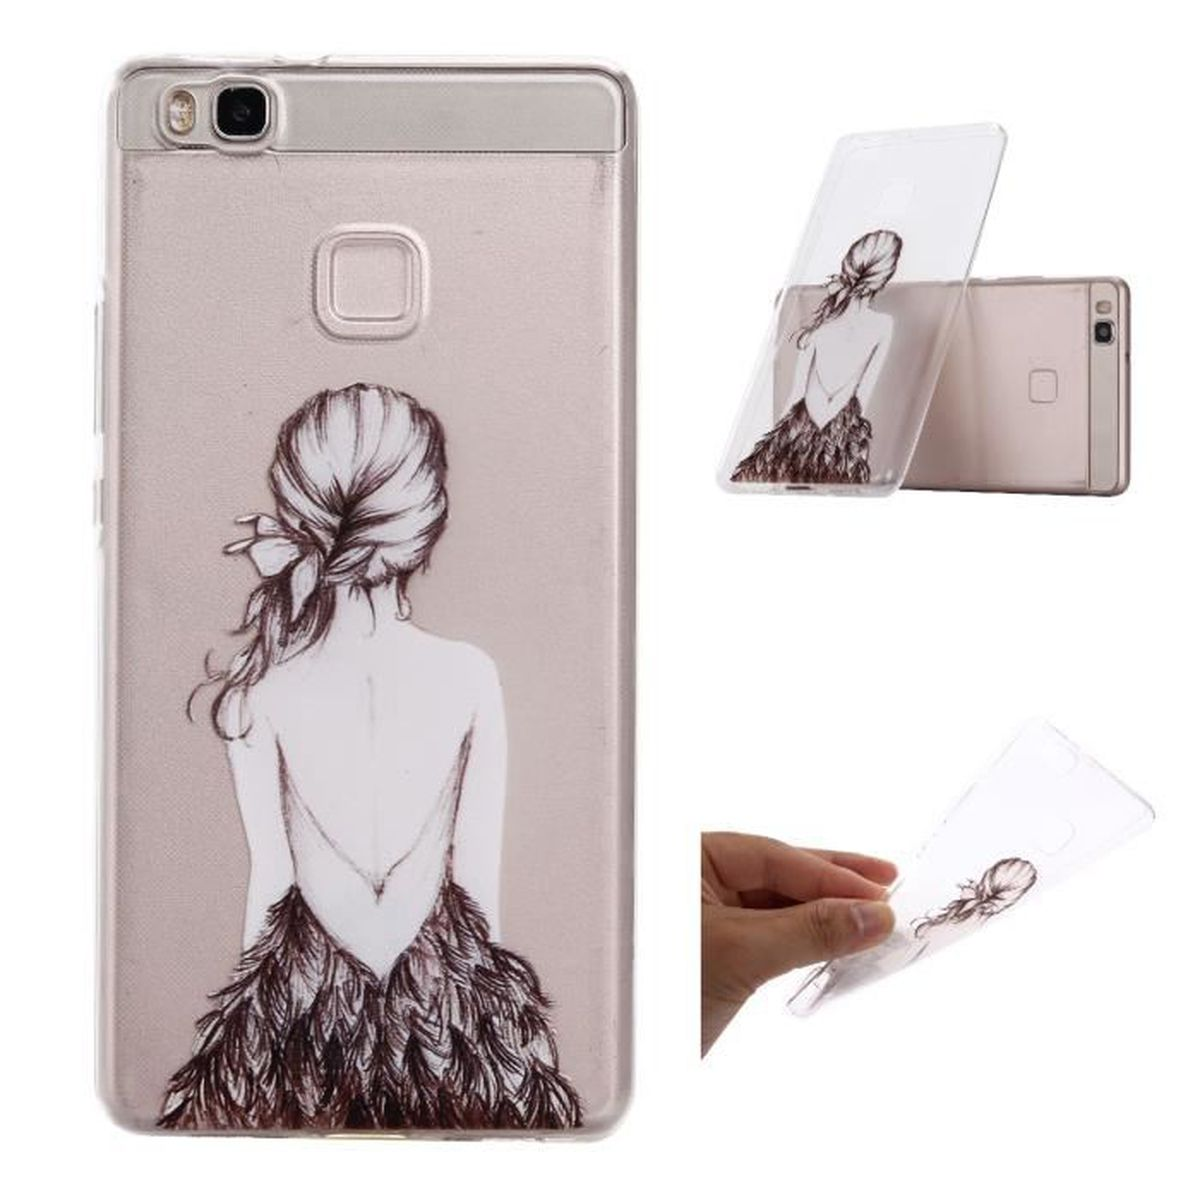 coque silicone huawei p10 lite plume